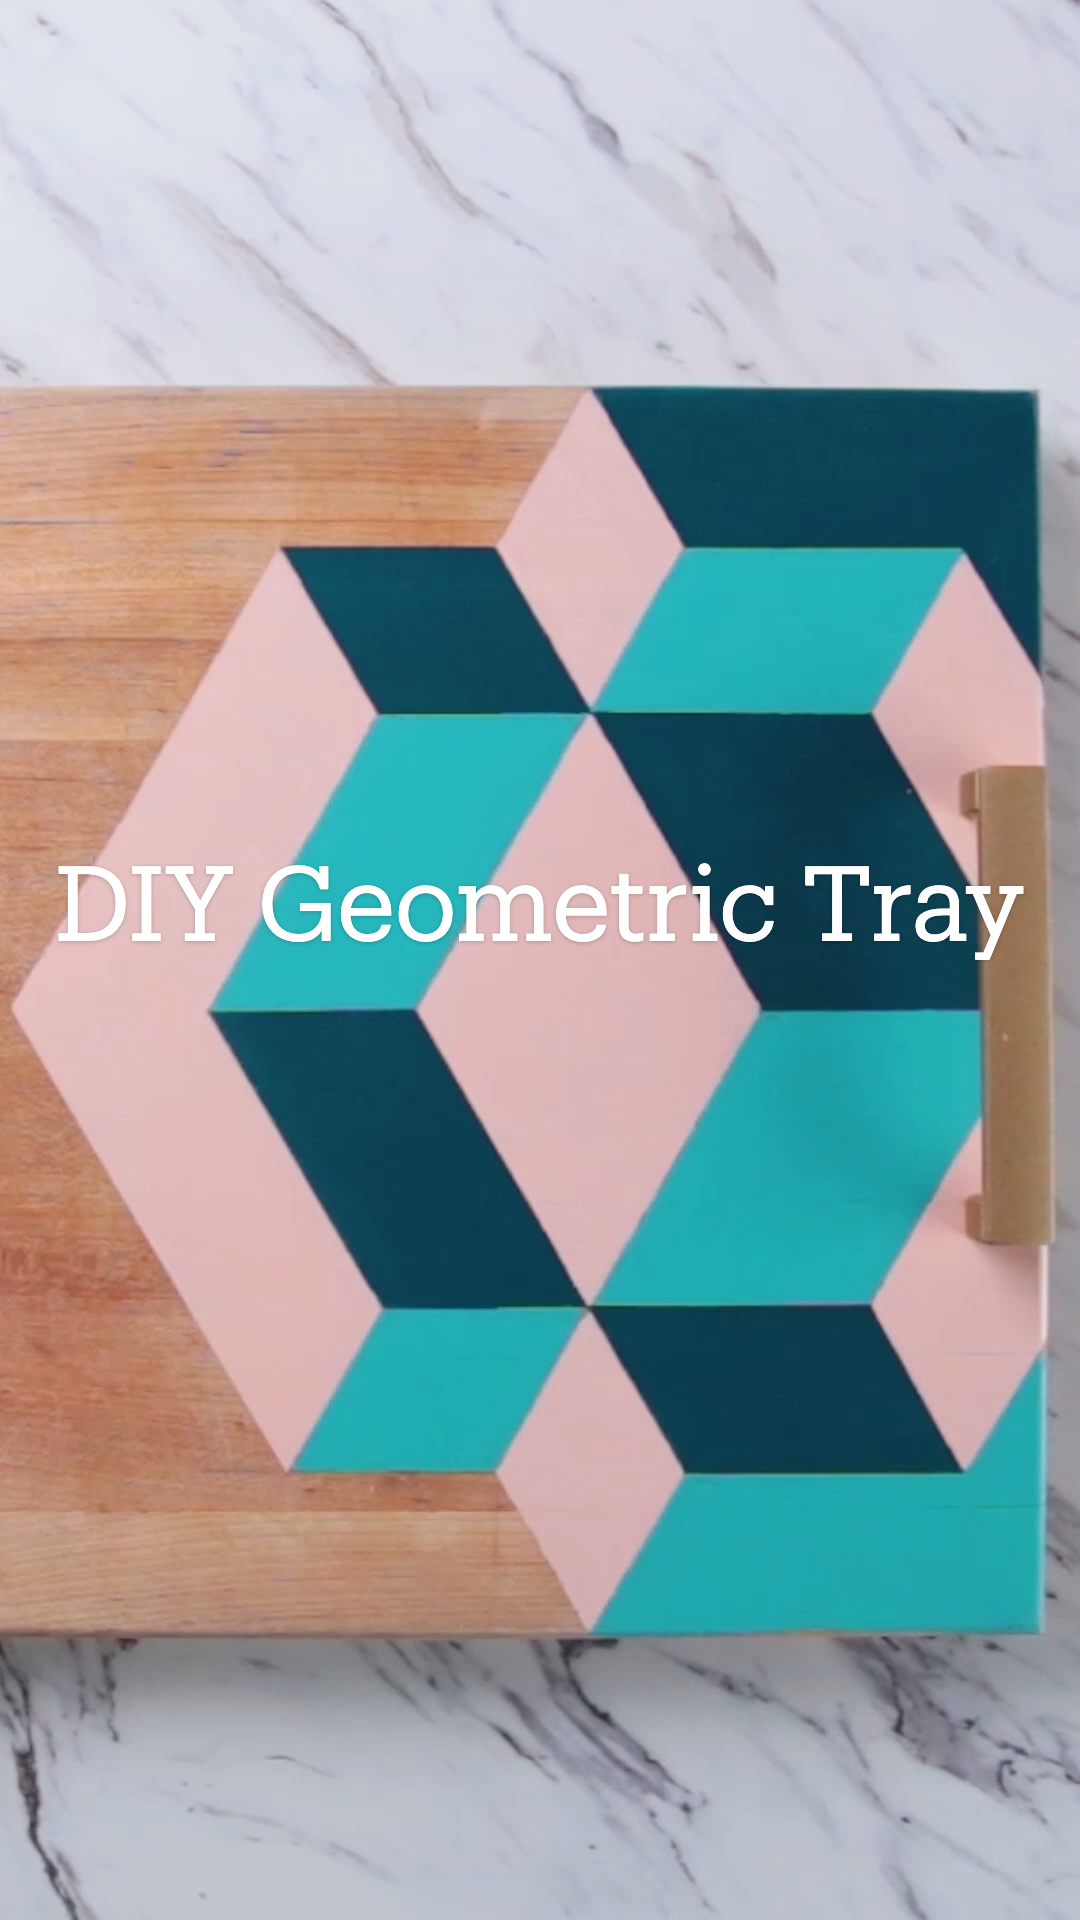 DIY Geometric Tray